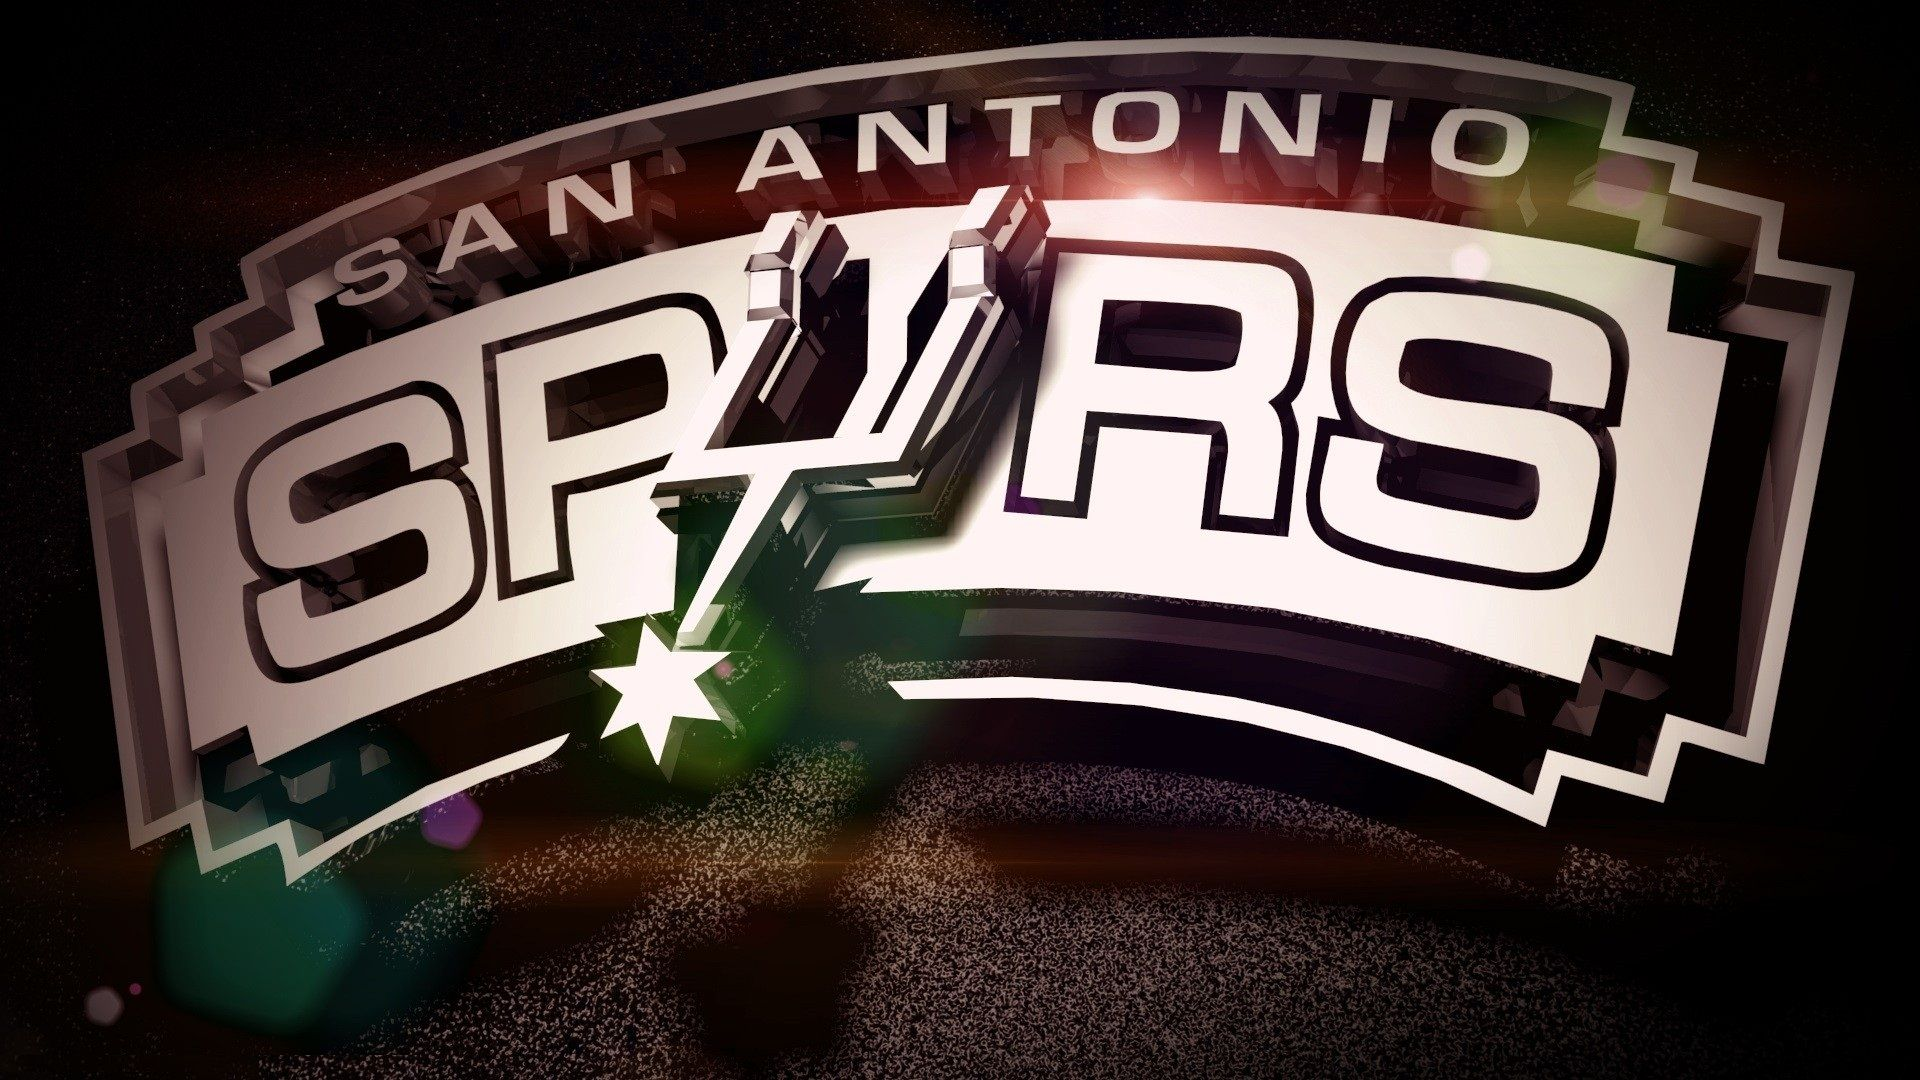 1920x1080 - San Antonio Spurs Wallpapers 19